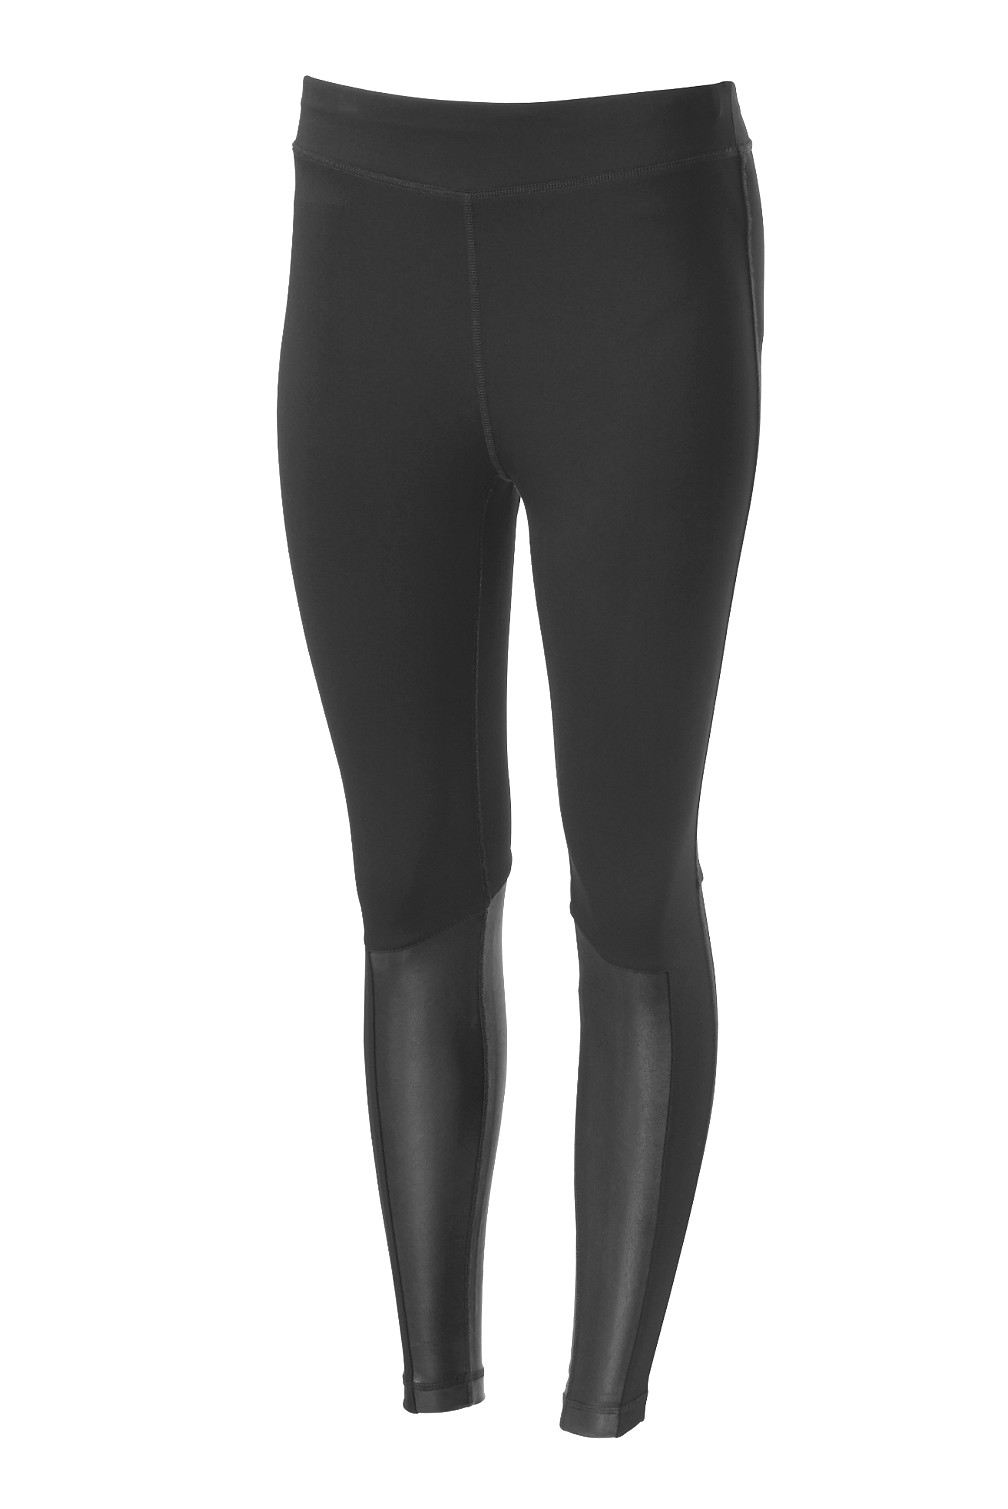 Harley-Davidson® Women's Mid-Rise Activewear Leggings | Leather Accents